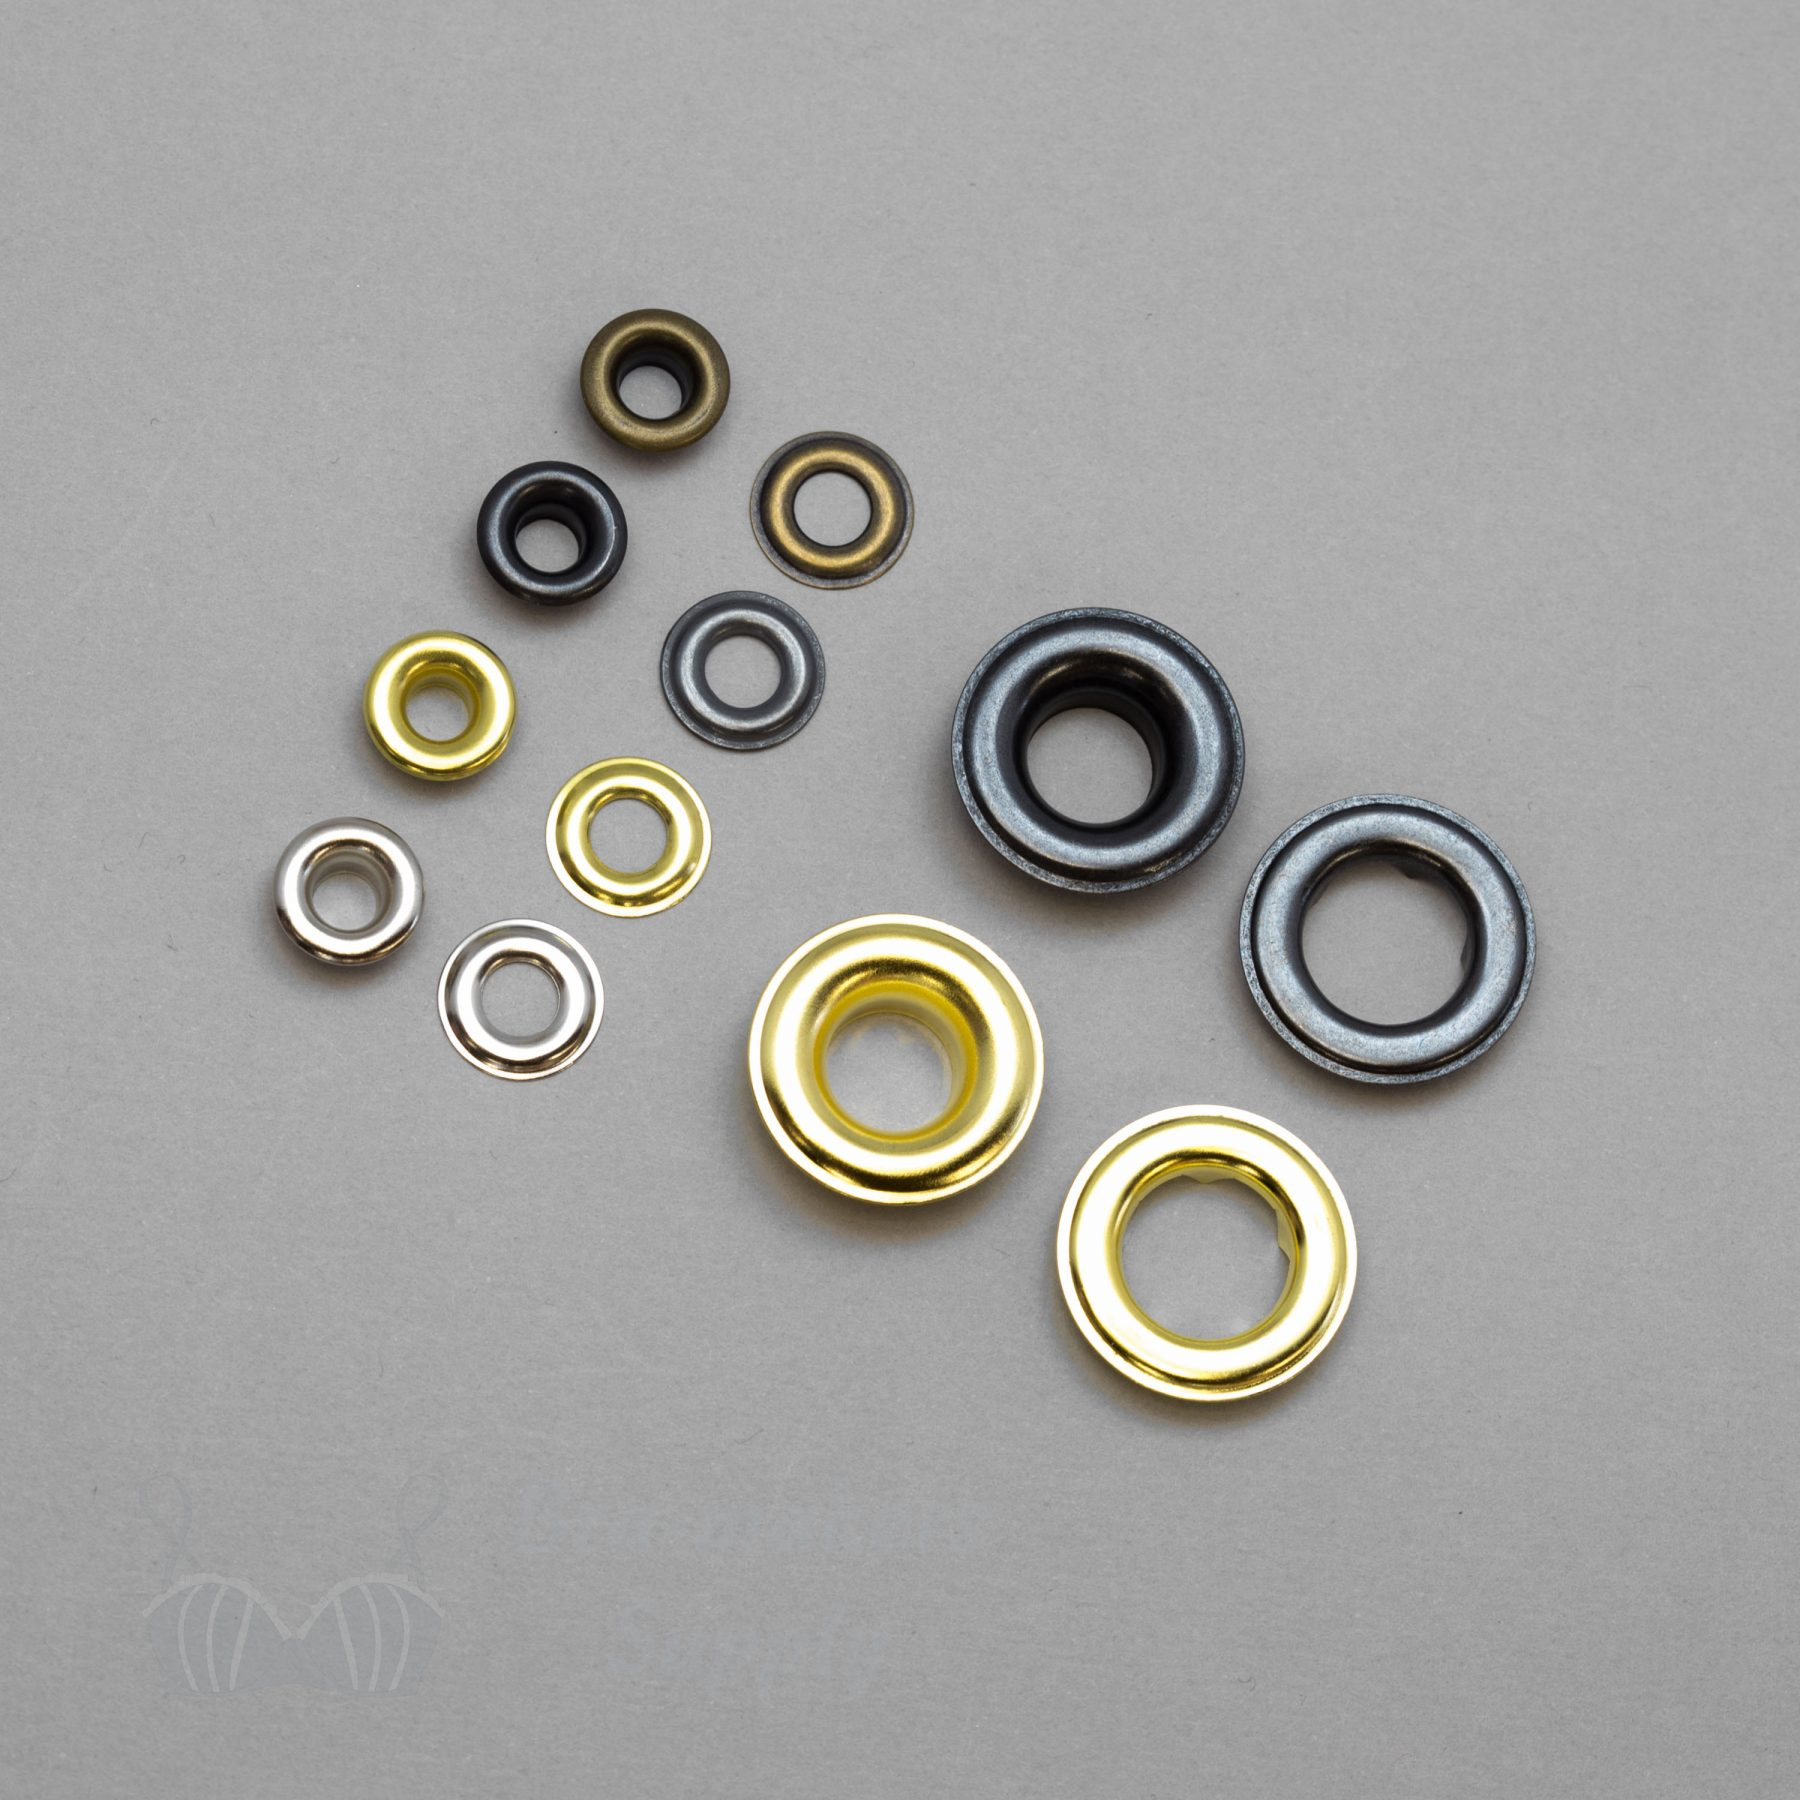 metal corset grommets or two part eyelets BS from Bra Makers Supply product photo scaled